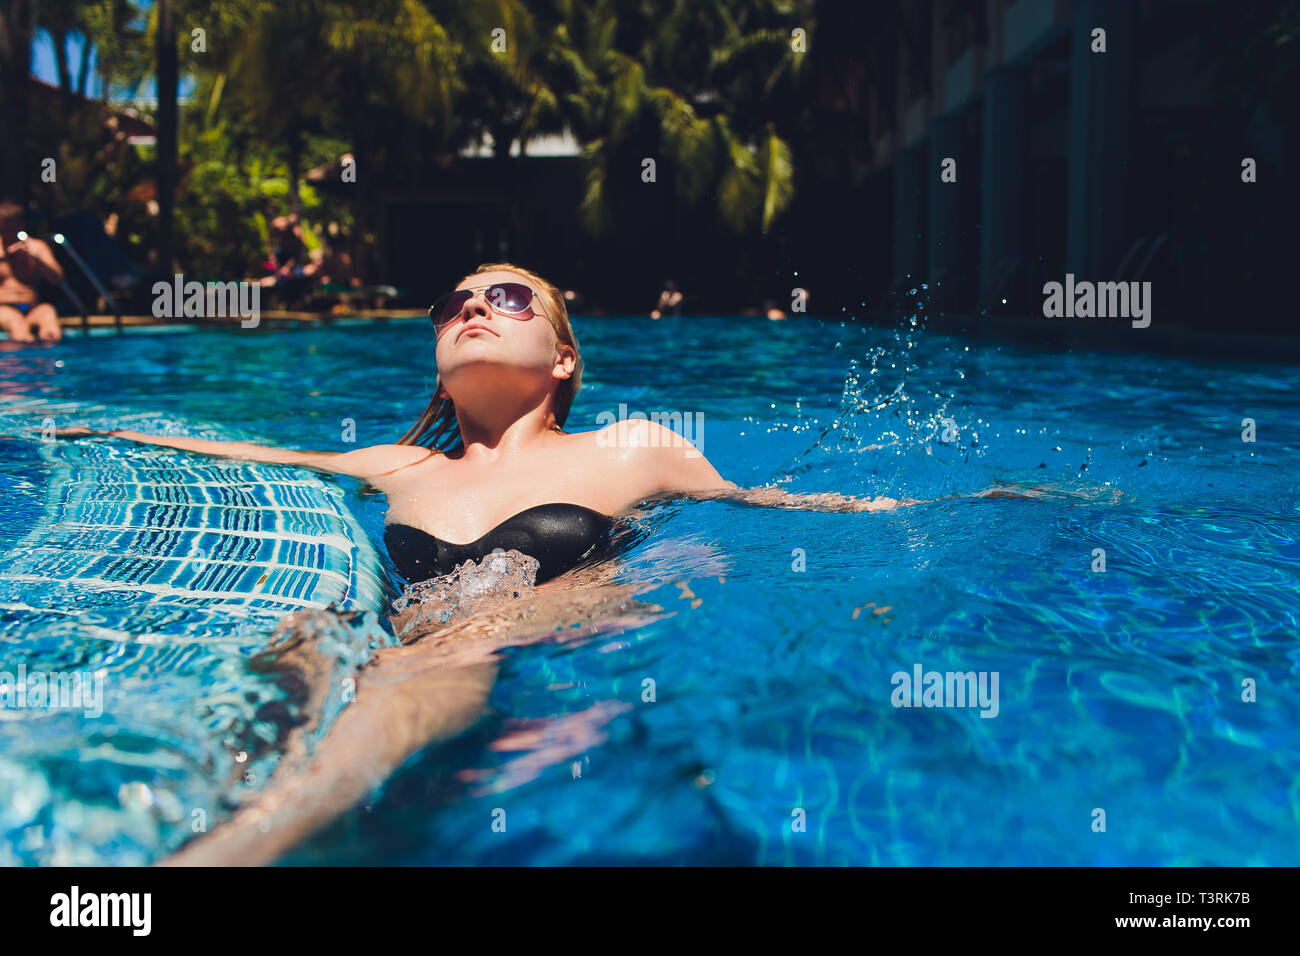 65c5a017dd7fd Beautiful Woman Relaxing In Swimming Pool Water. Girl With Healthy Tanned  Skin, Gorgeous Face